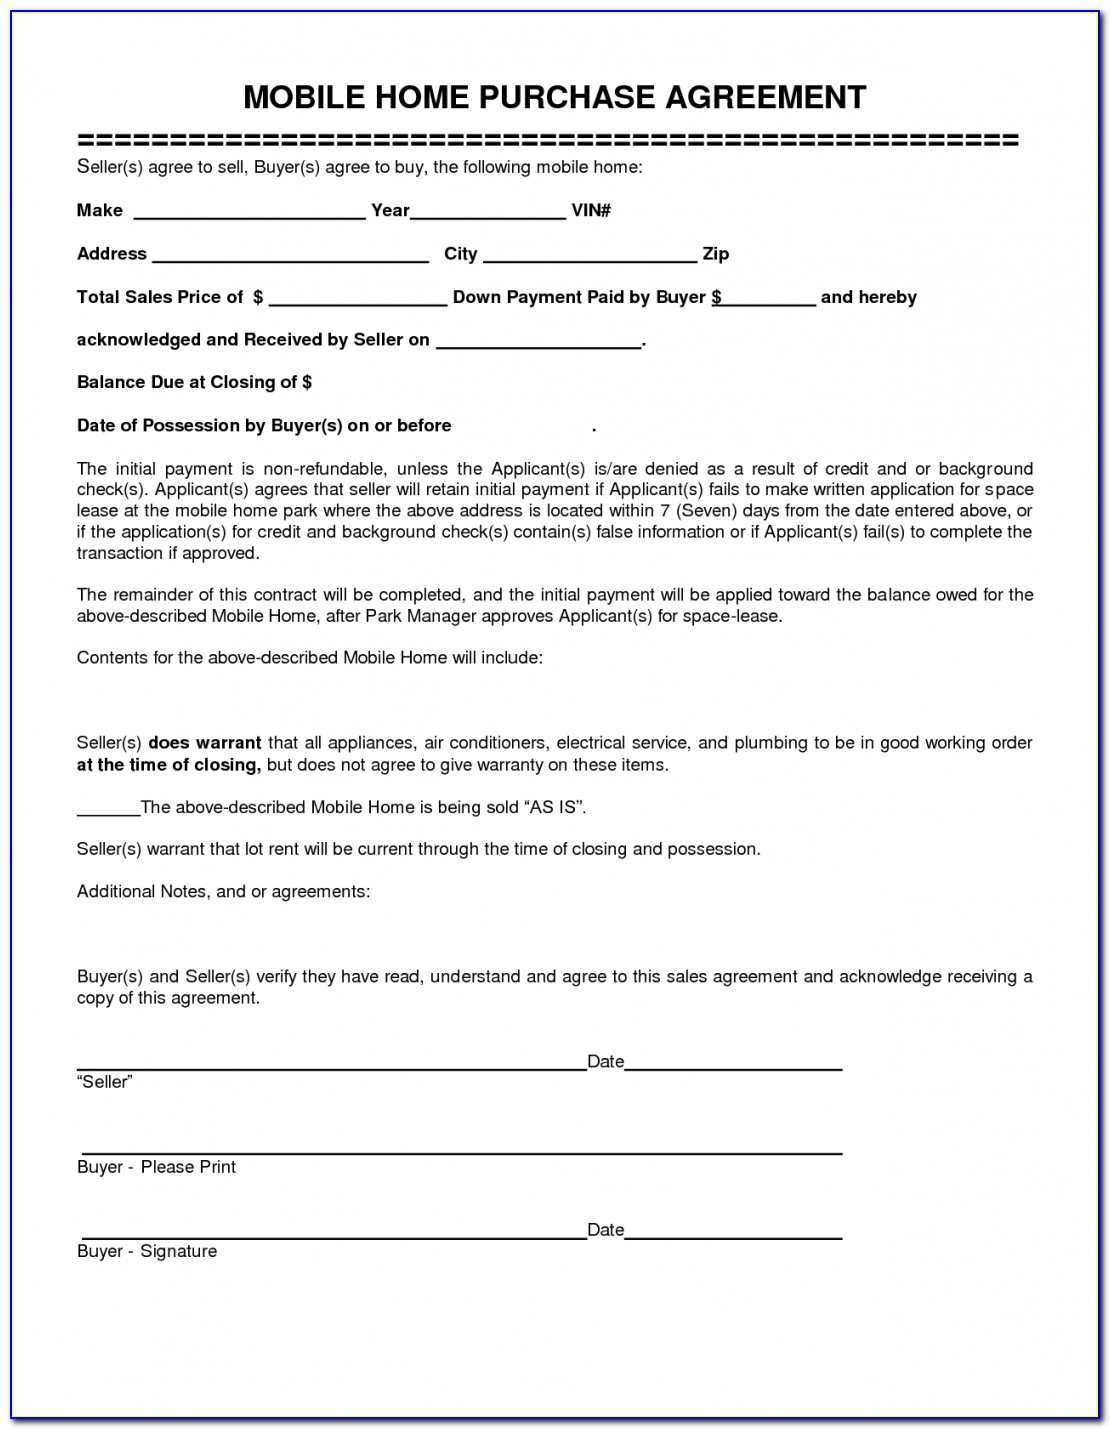 Mobile Home Purchase Agreement Template Free